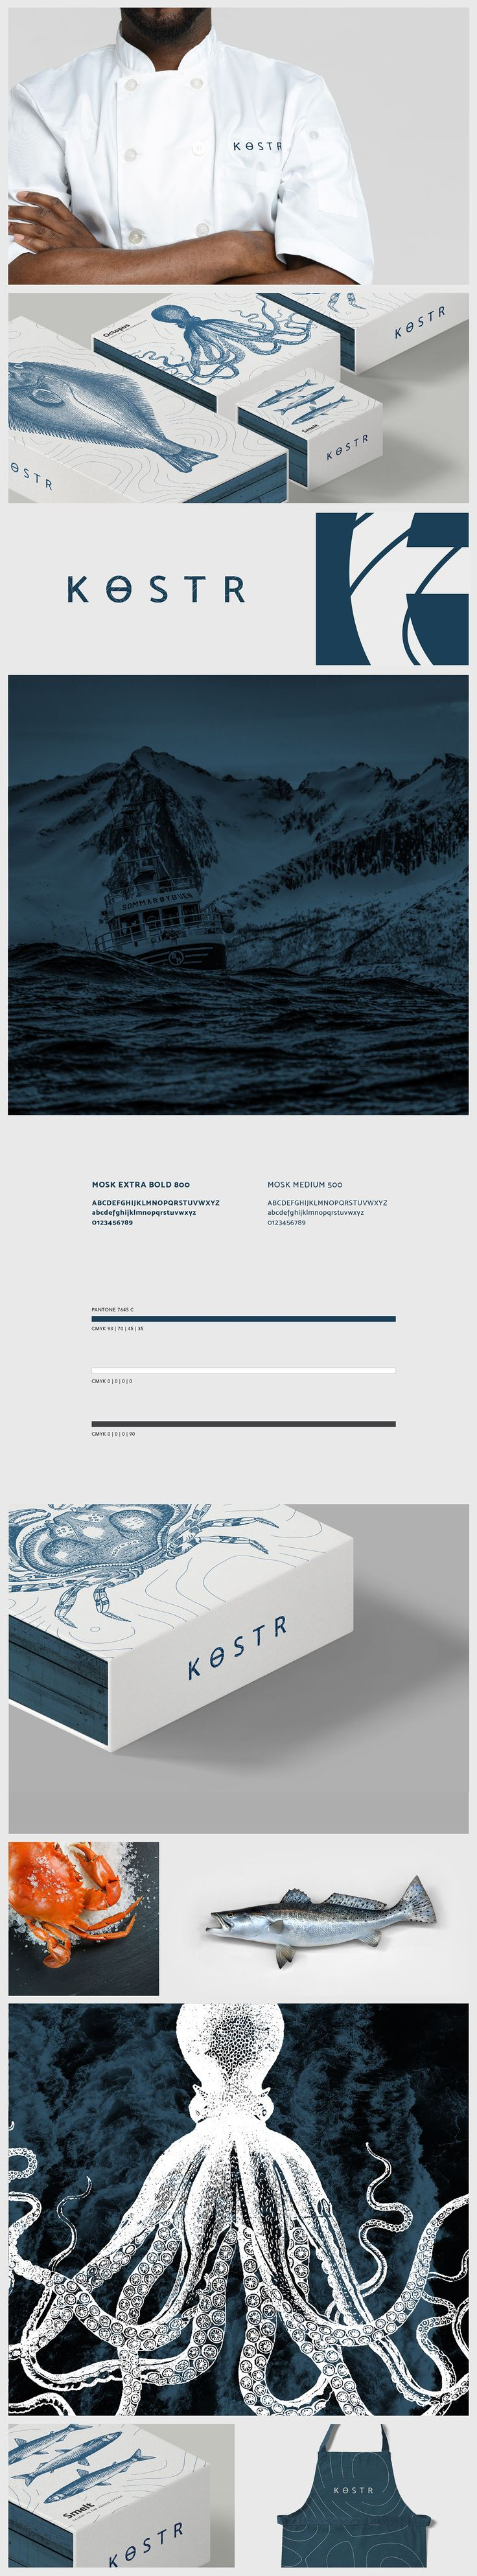 Kostr is a Nordic brand of fresh seafood. The meaning of Kostr in Old Norse is…